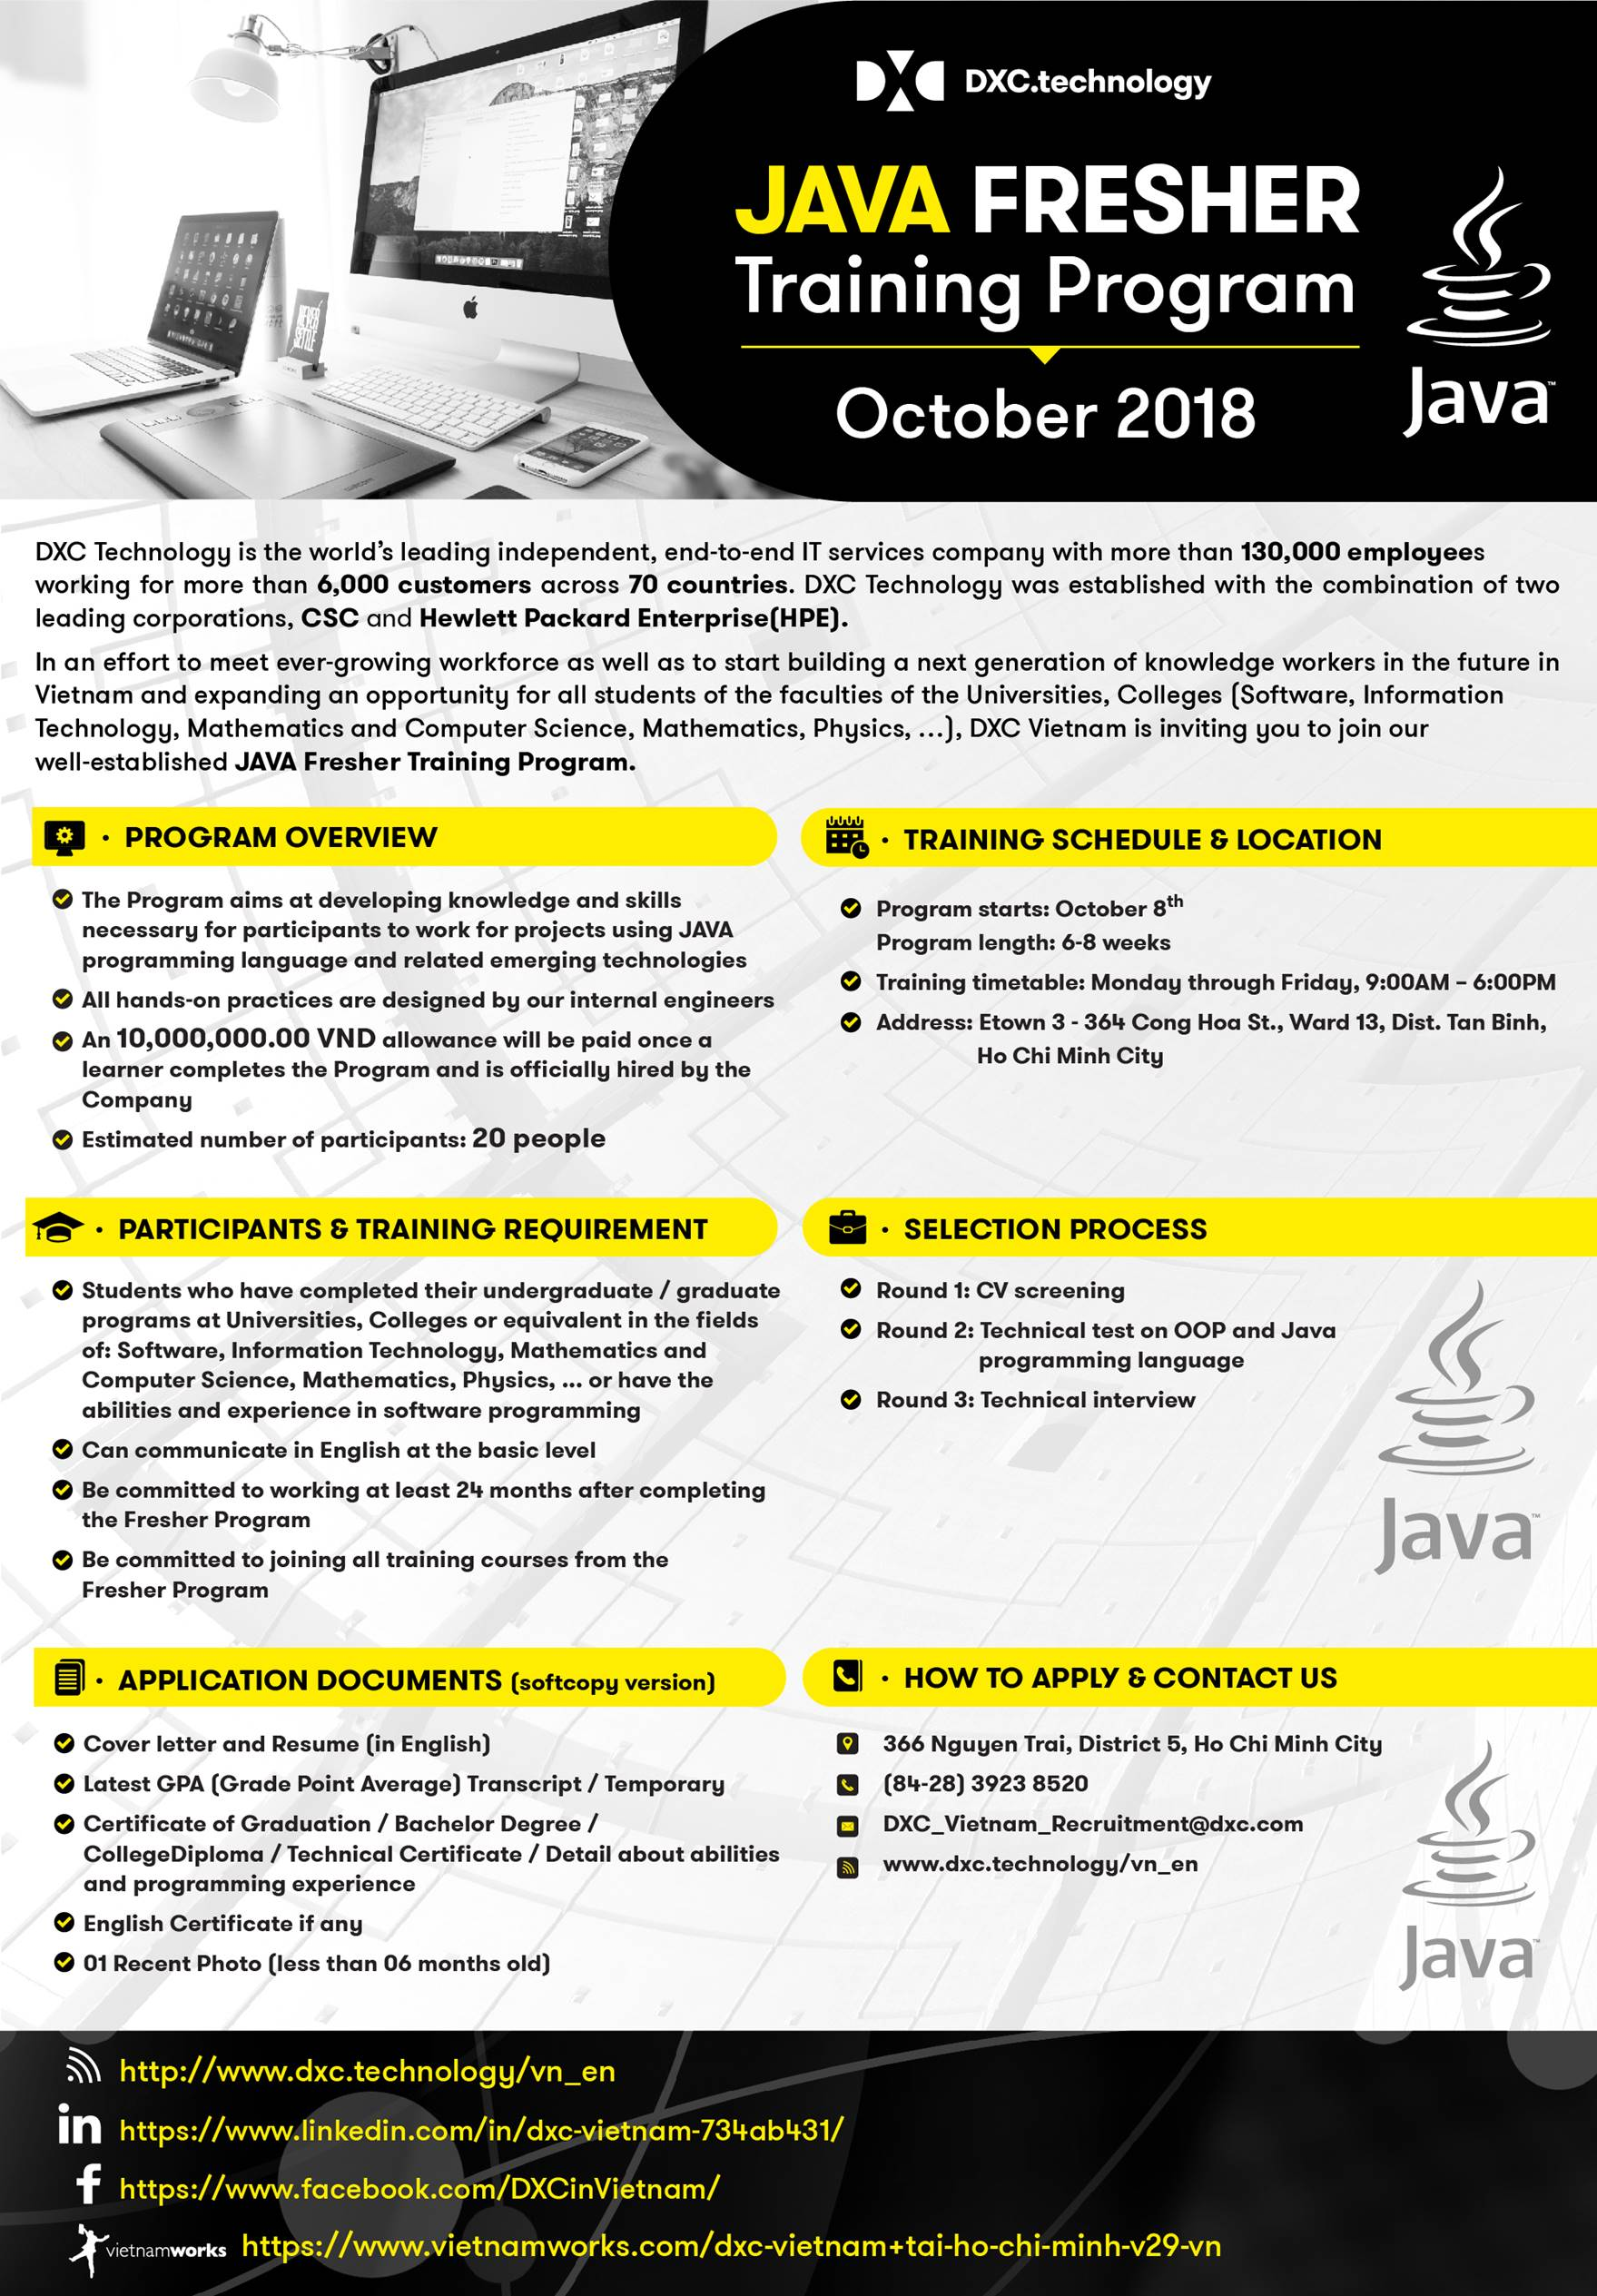 JAVA Fresher Program